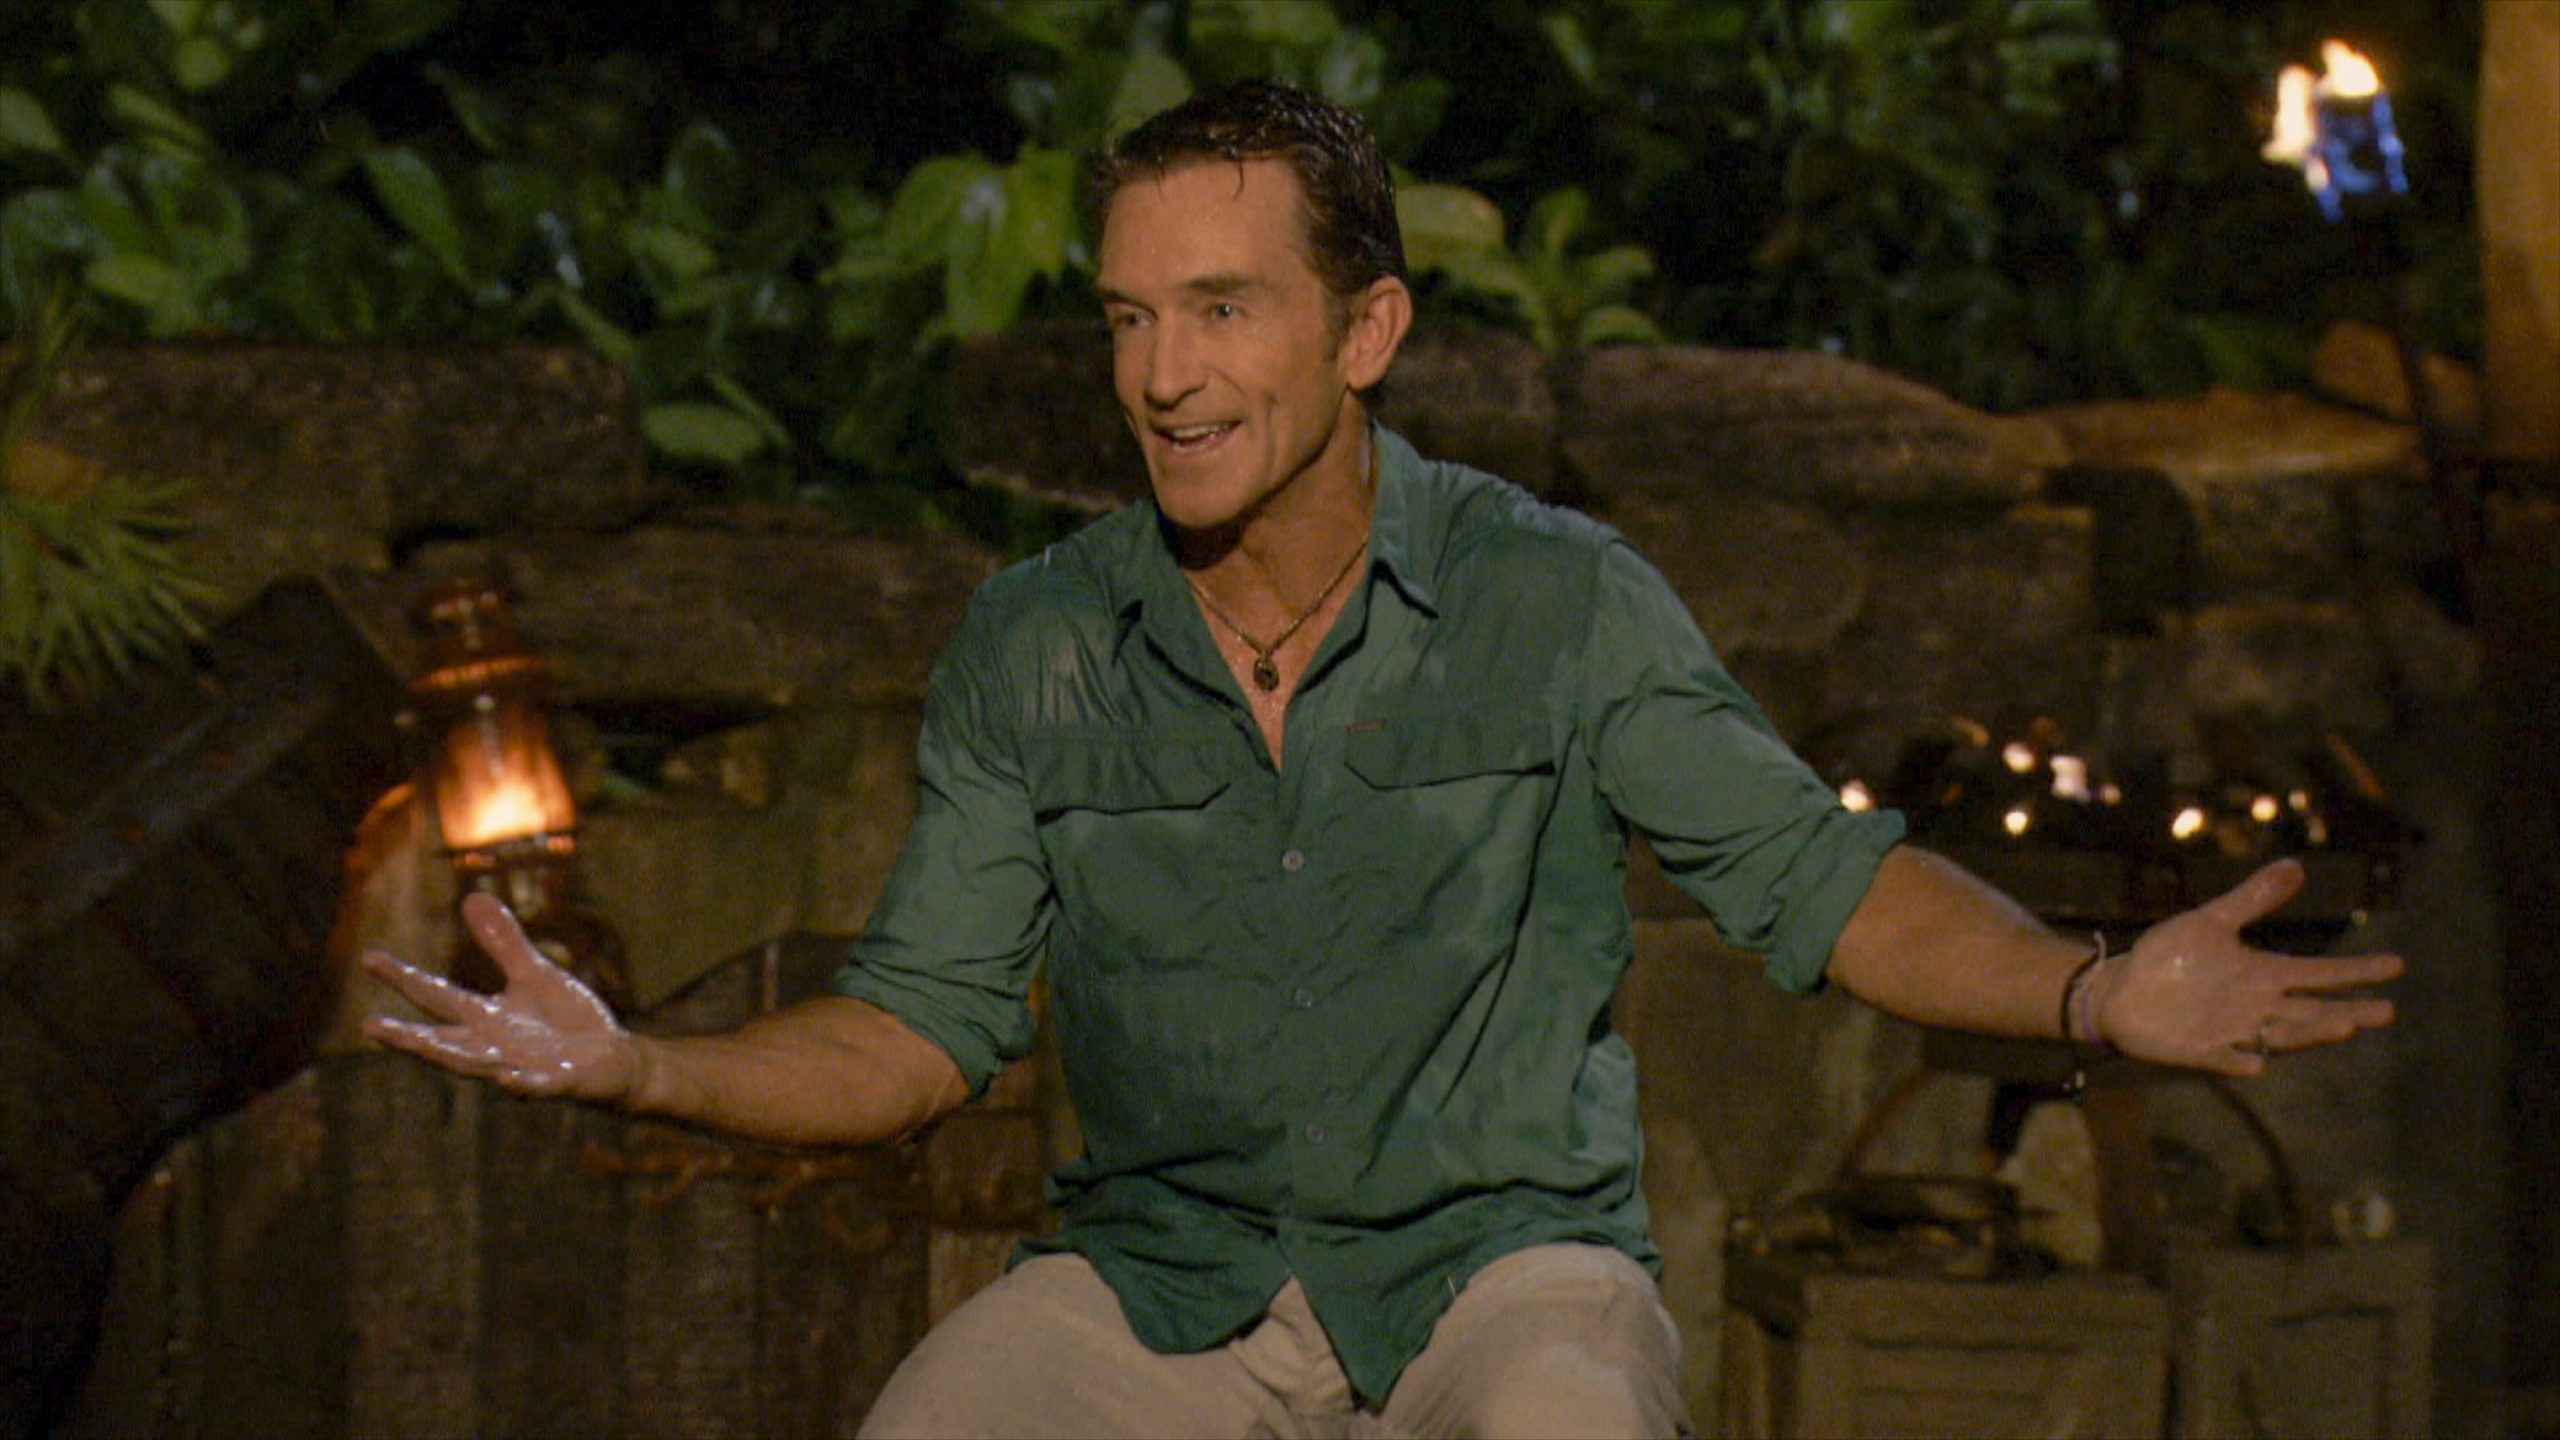 Jeff Probst of Survivor